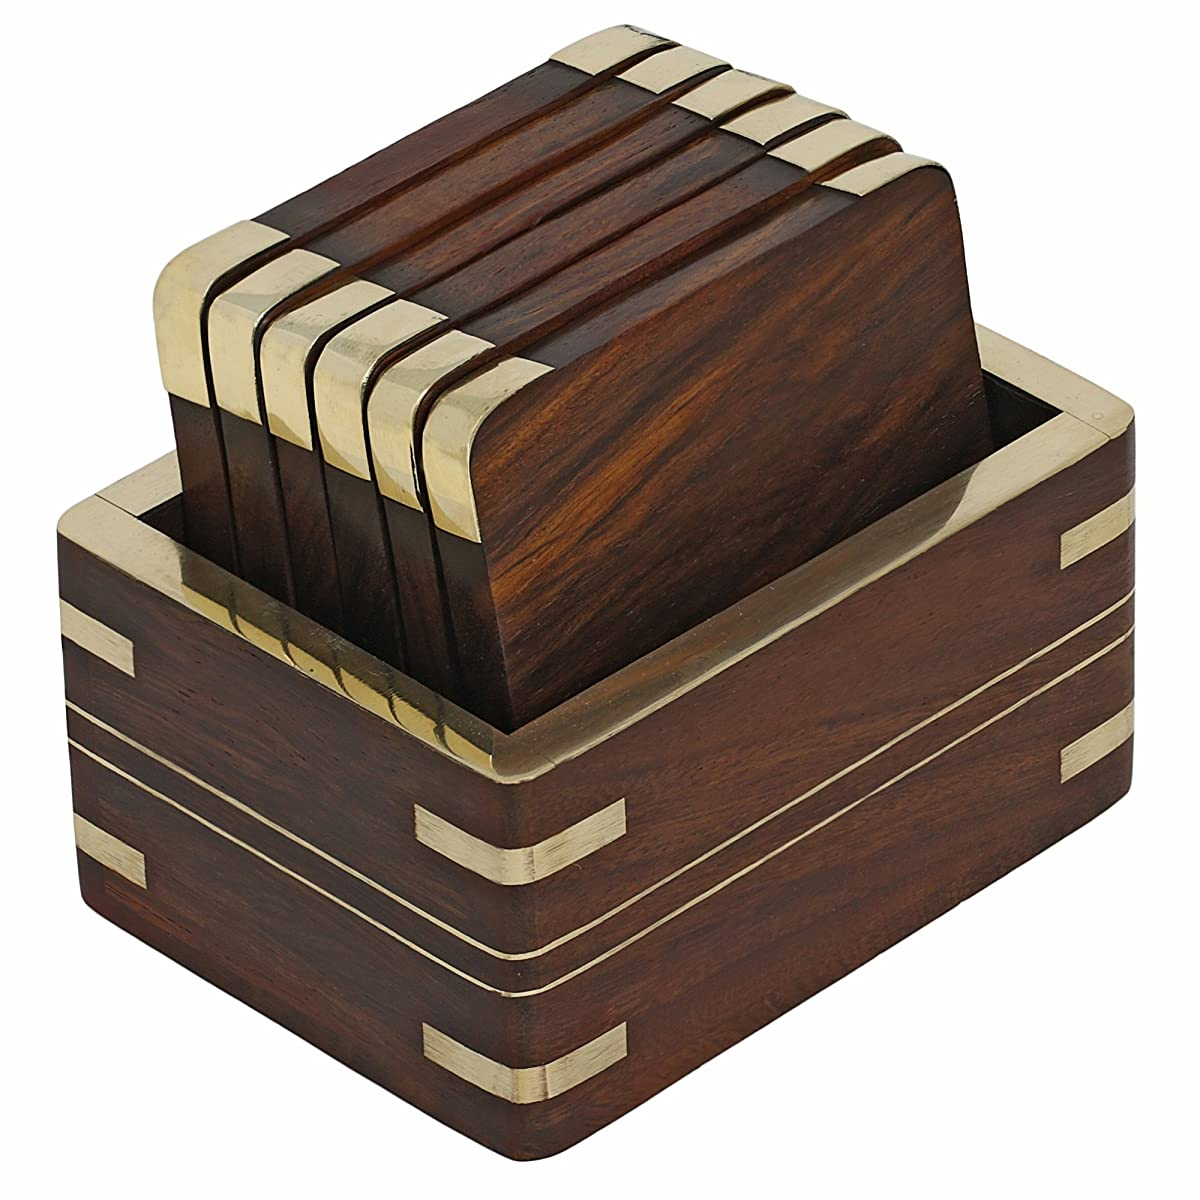 Wooden Tea Coasters and Holder Set With Golden Brass Decoration